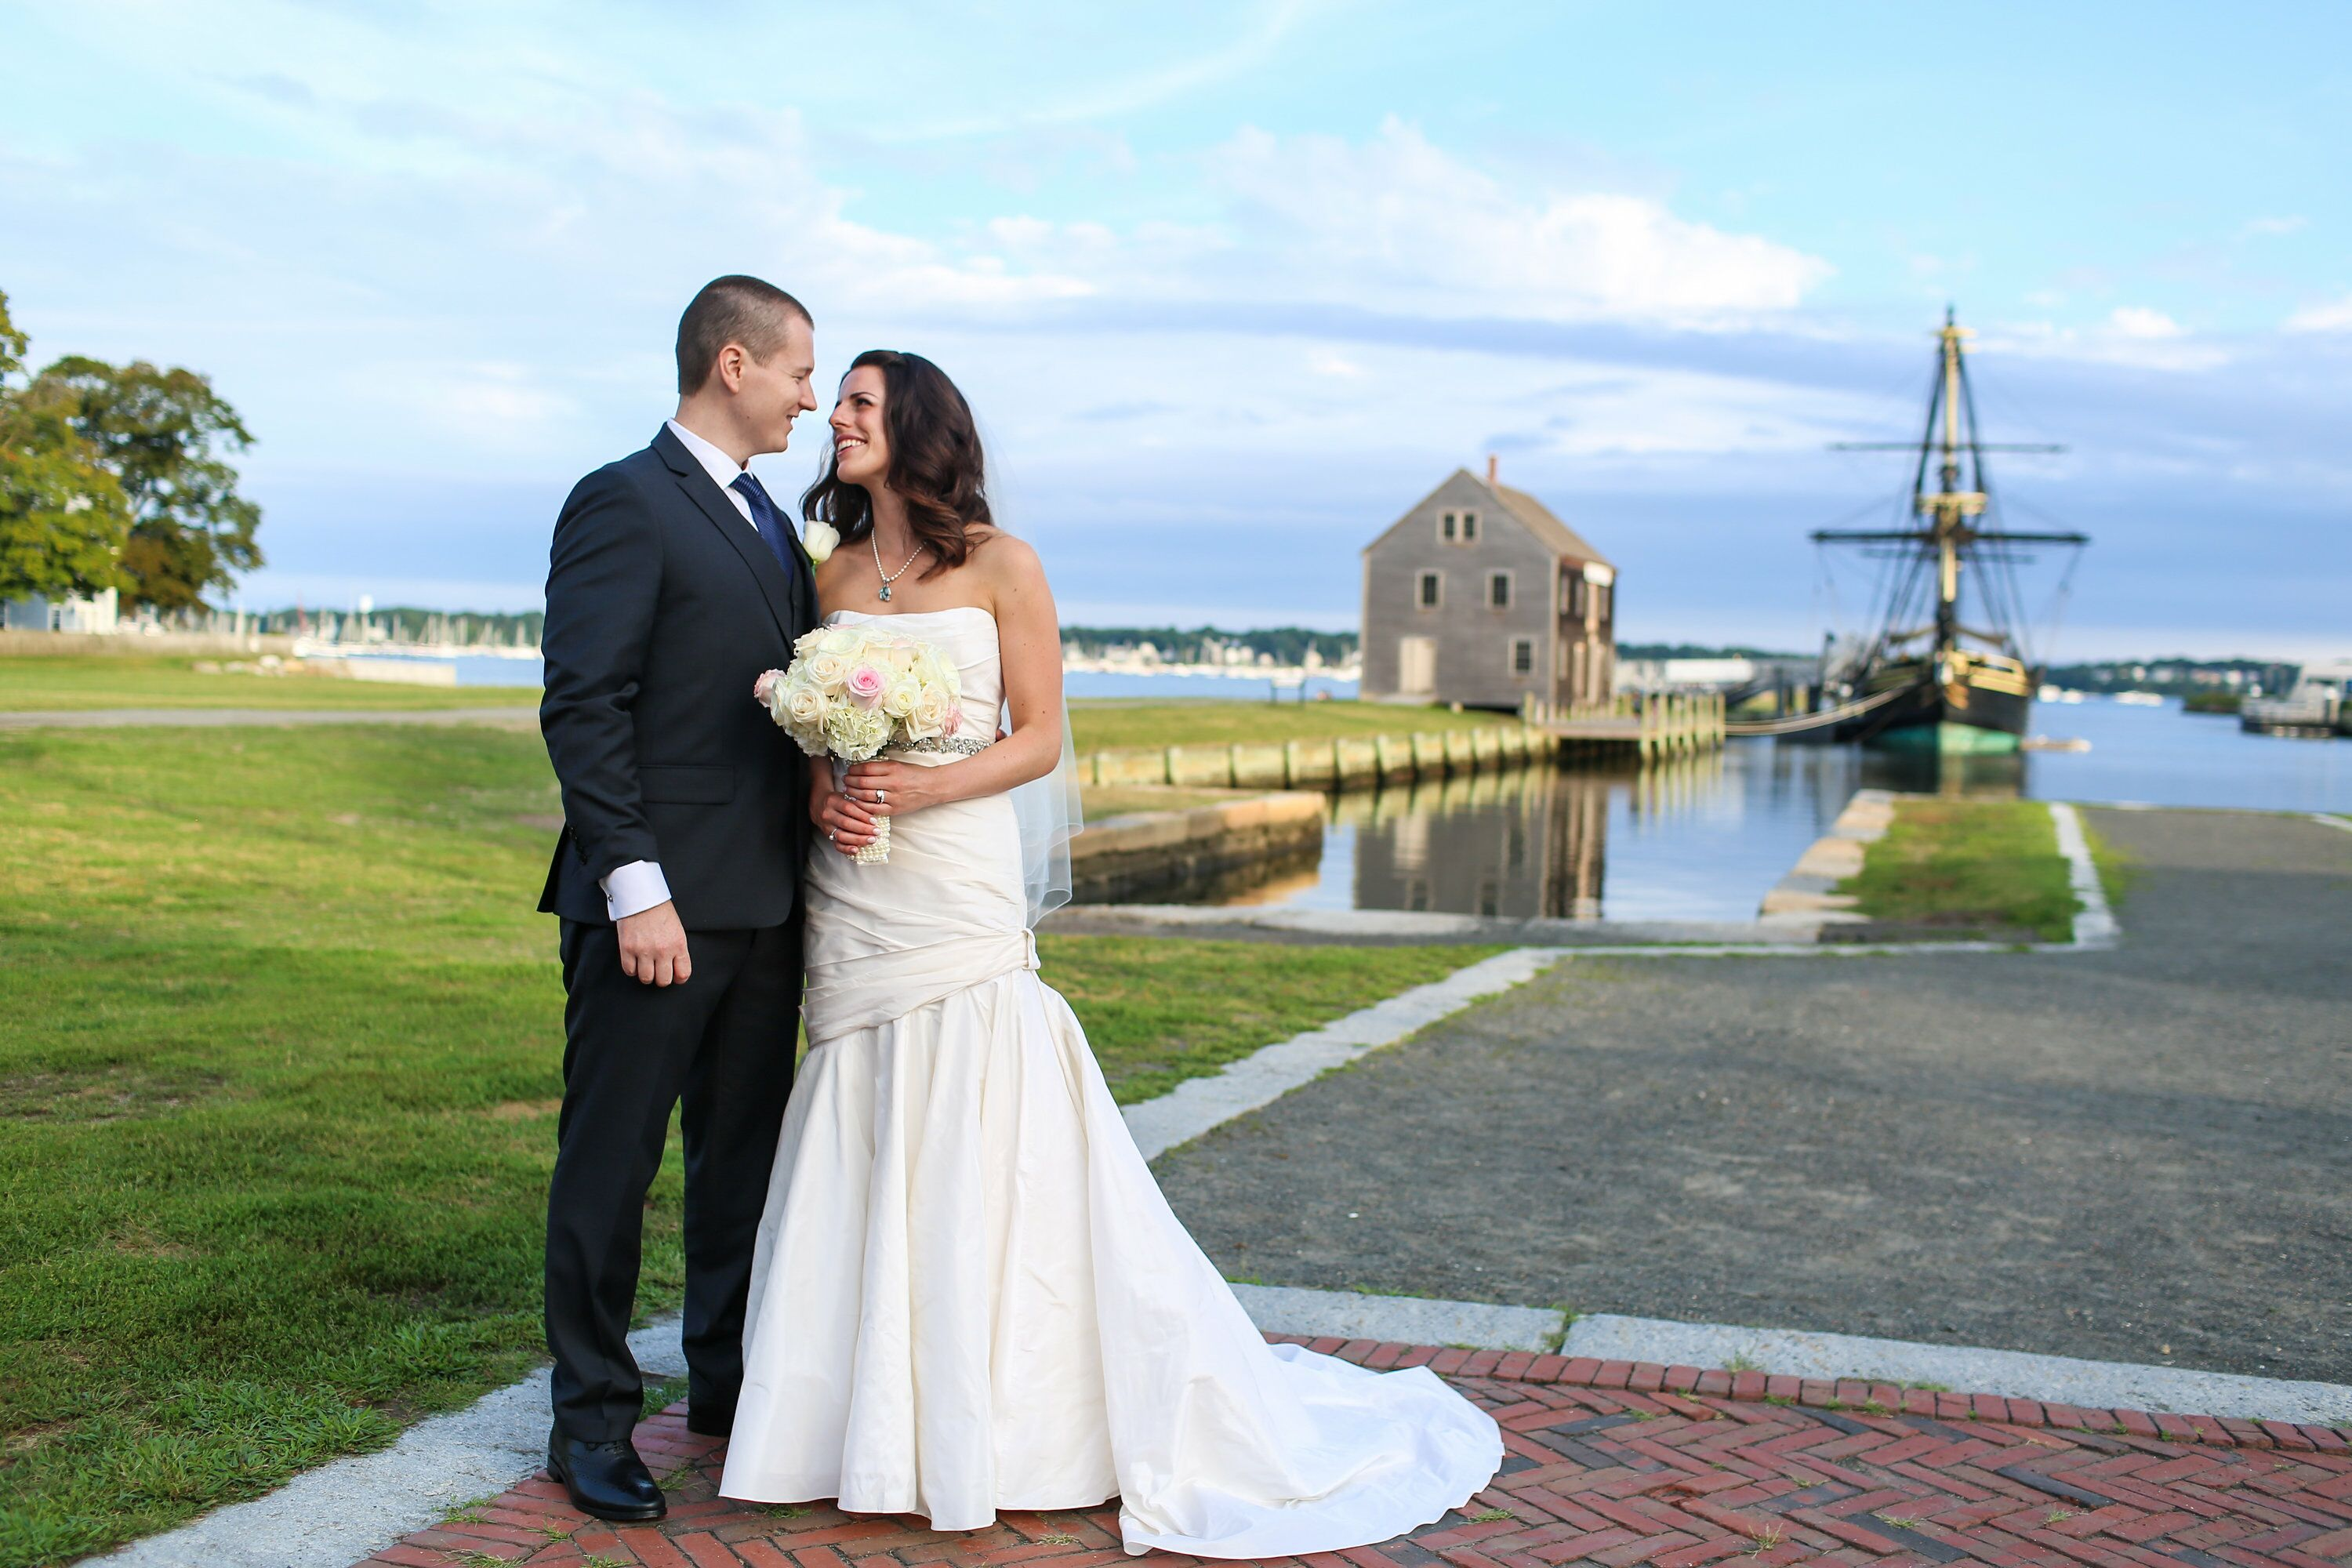 Wedding Reception Venues In Manchester Ma The Knot